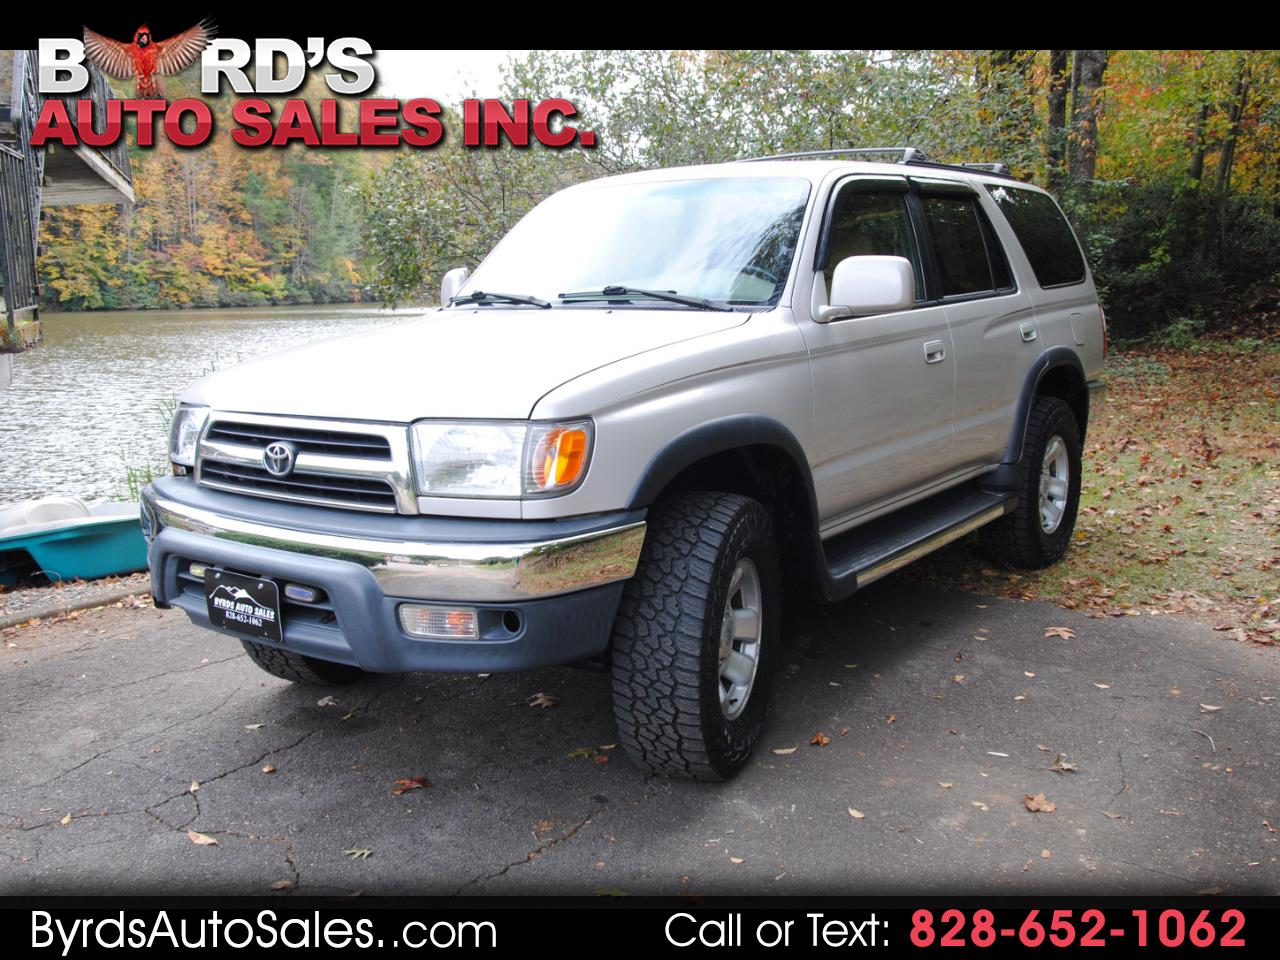 1999 Toyota 4Runner 4dr SR5 3.4L Auto 4WD